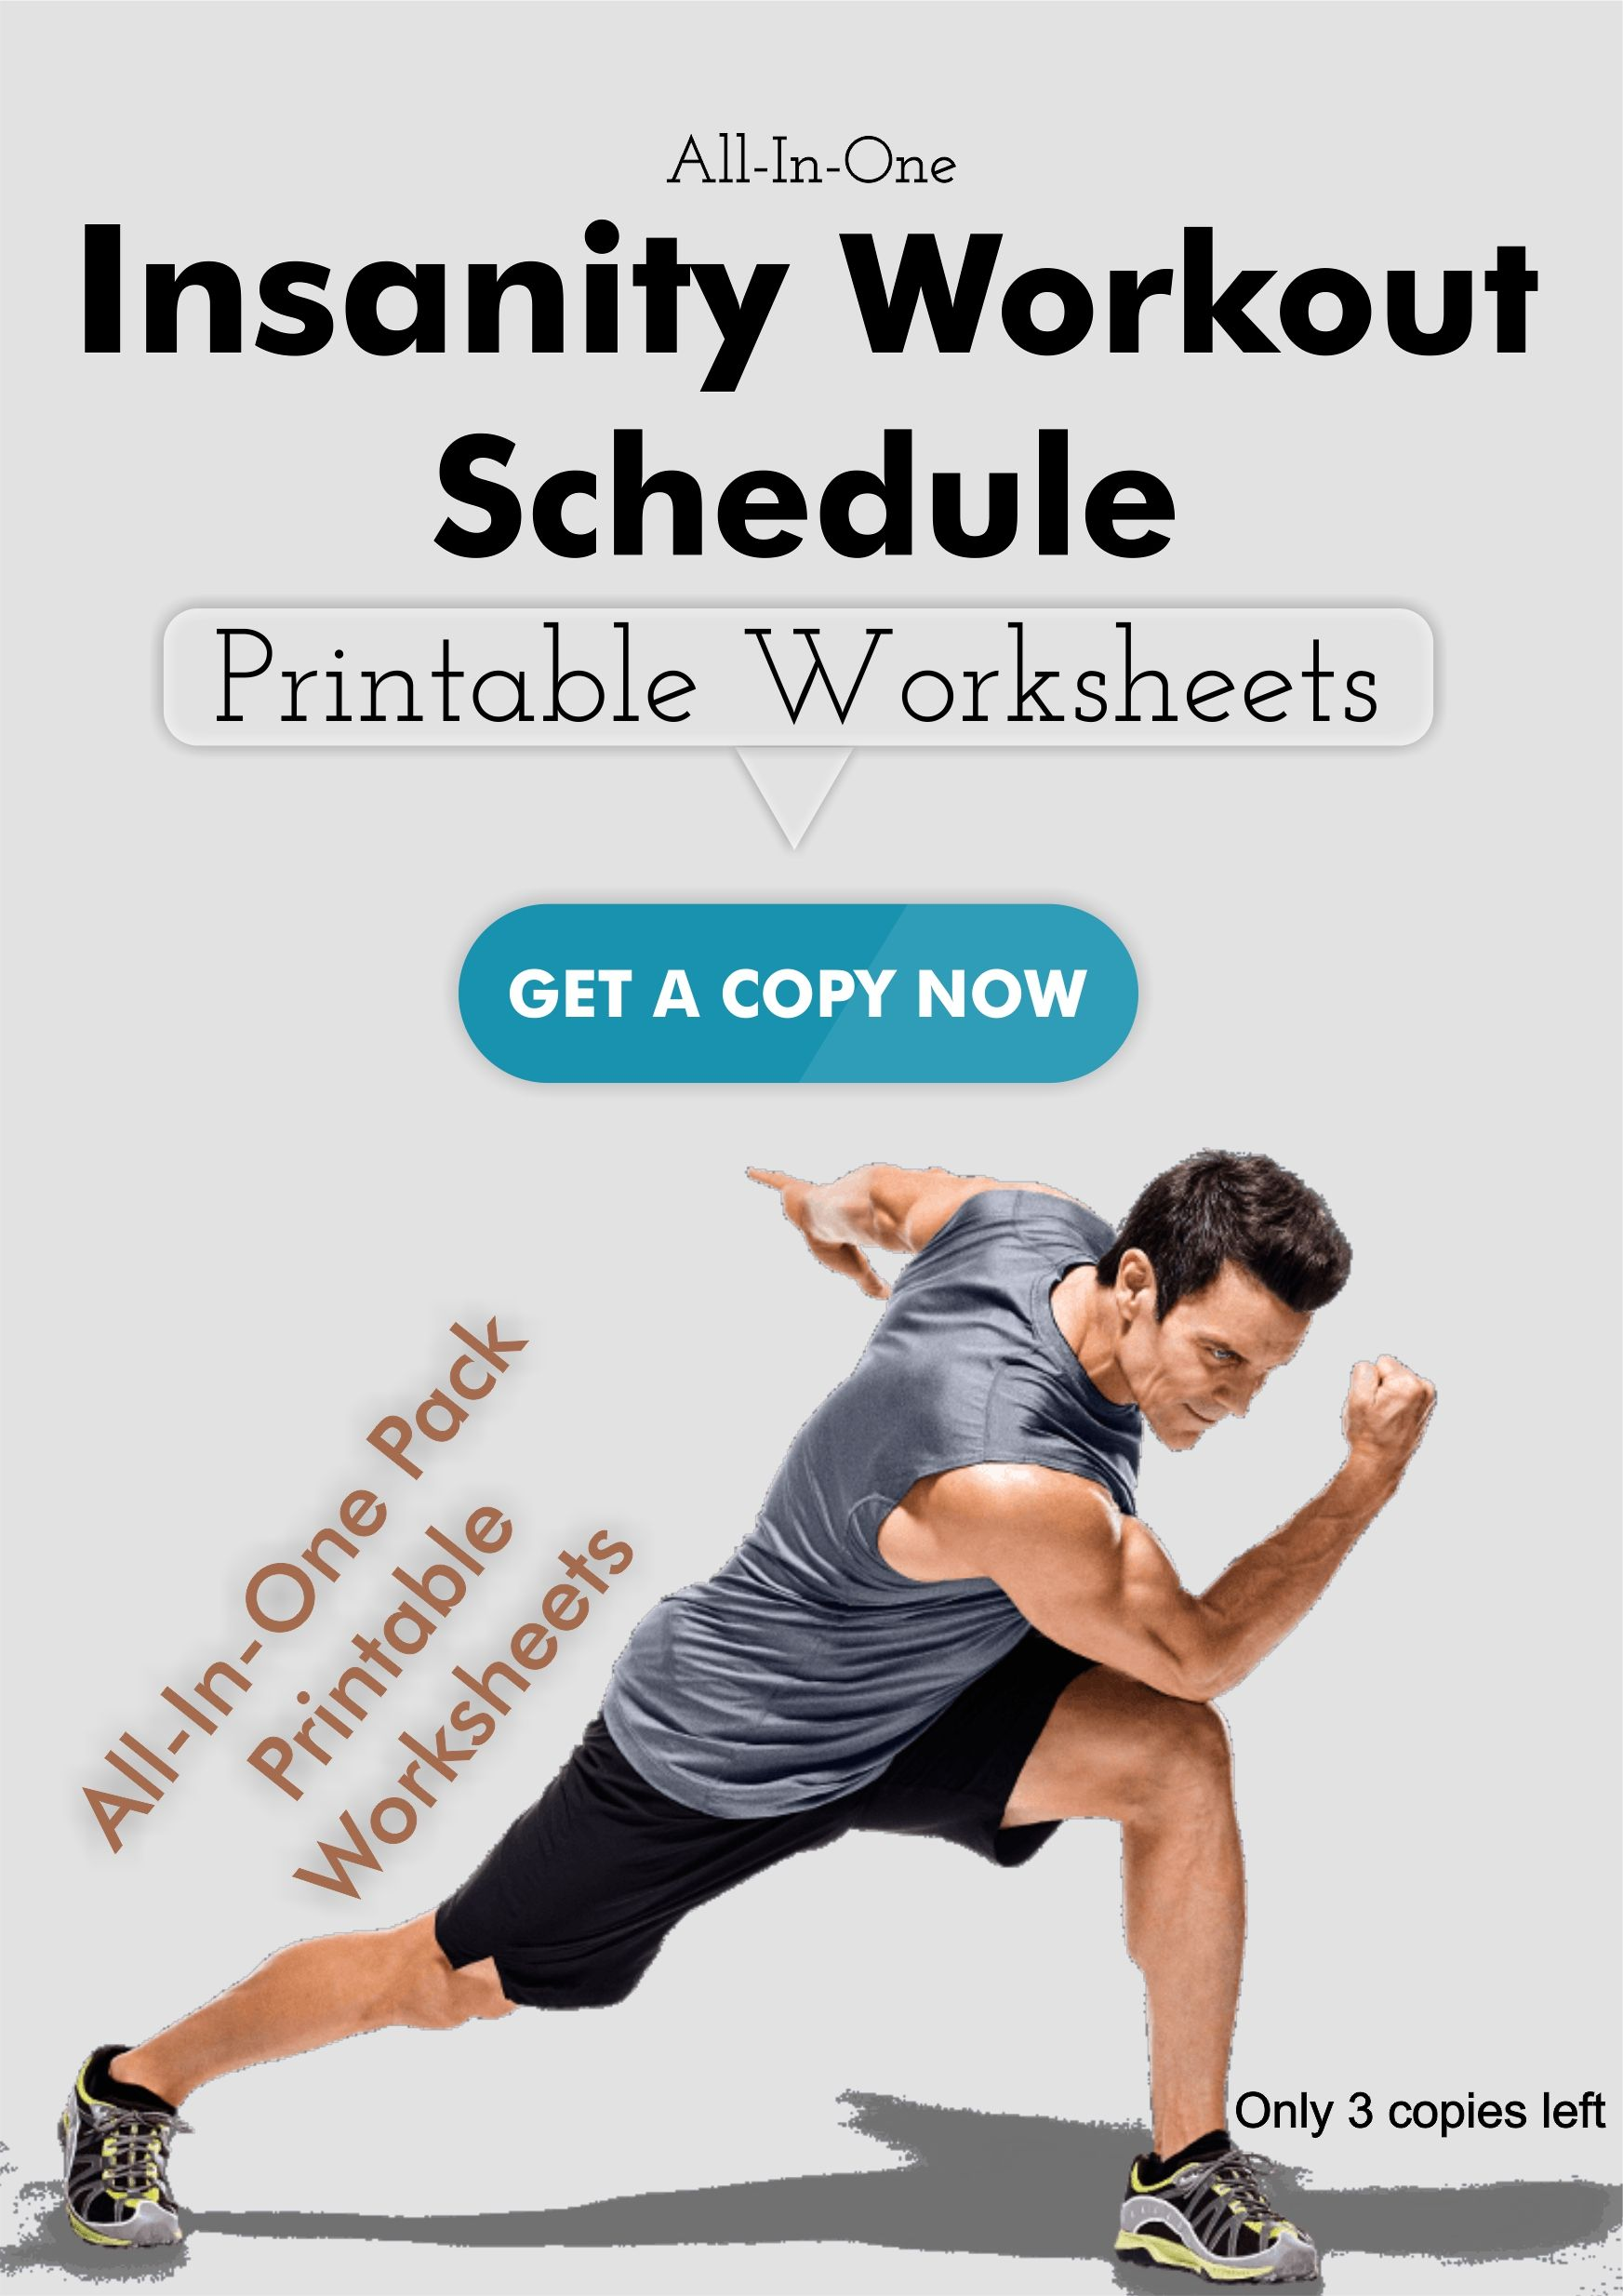 Astounding Insanity Workout Schedule Printable